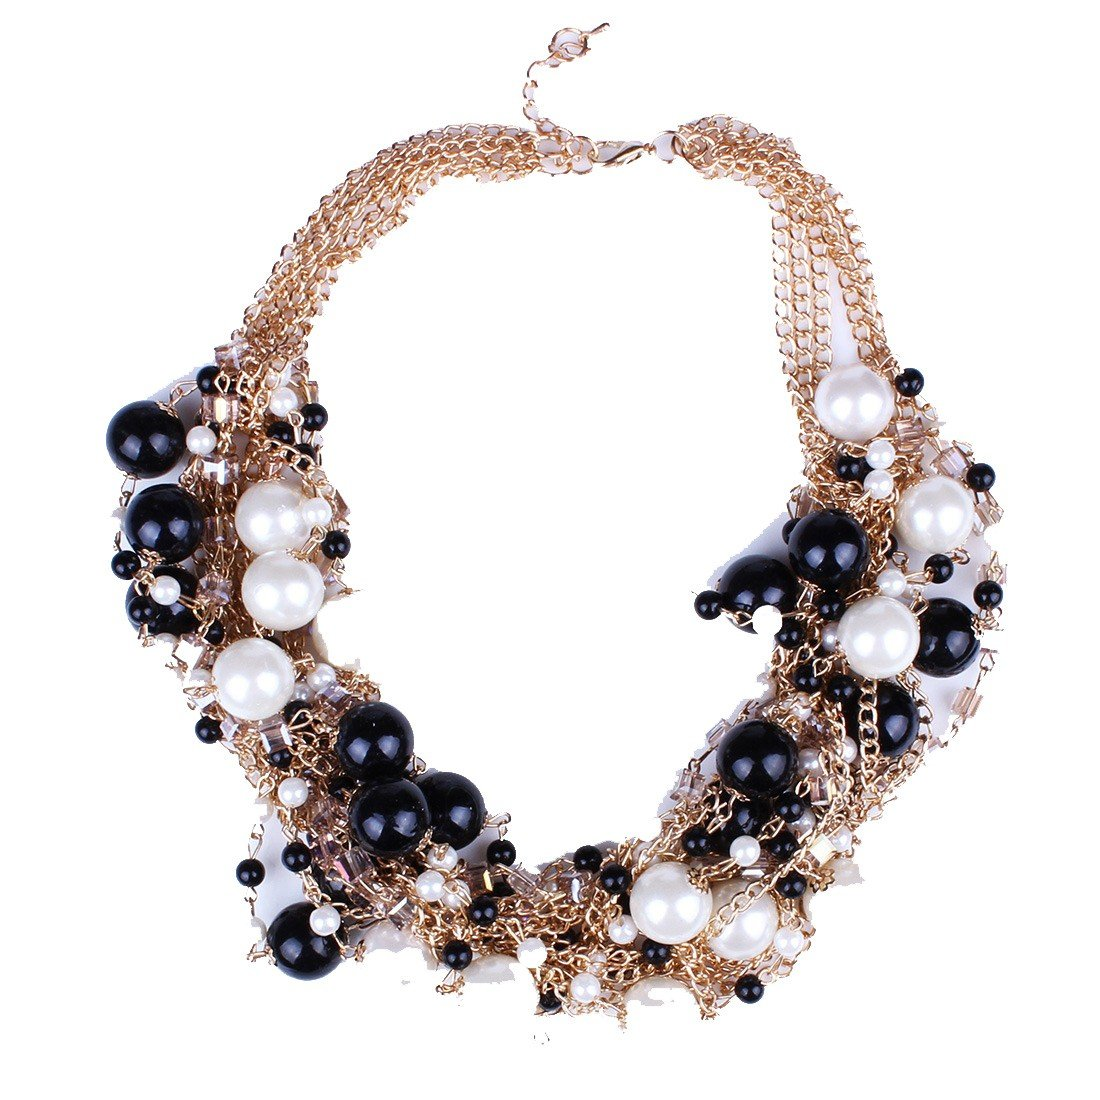 Qiyun Round Pearl Ball Beaded Golden Chain Linked Choker Necklace Ronde Boule De Perle D'Or Lie e Collier W005N2063